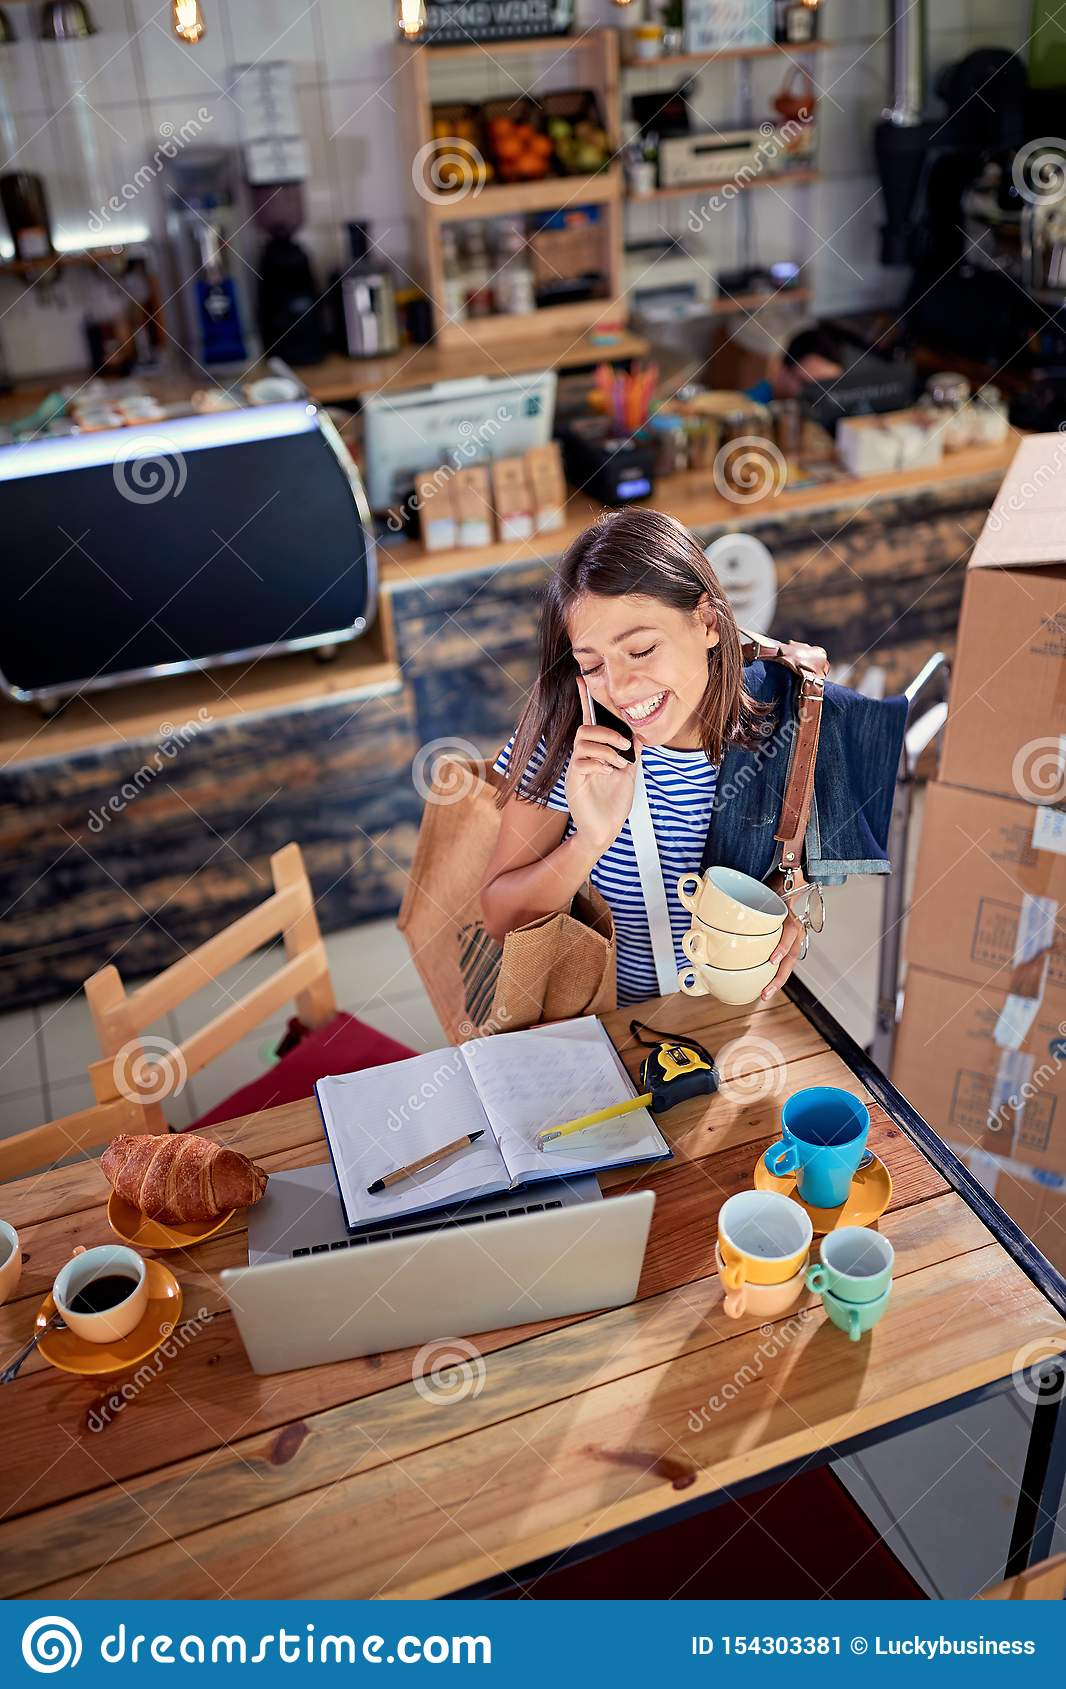 Coffee business concept - Woman owner working